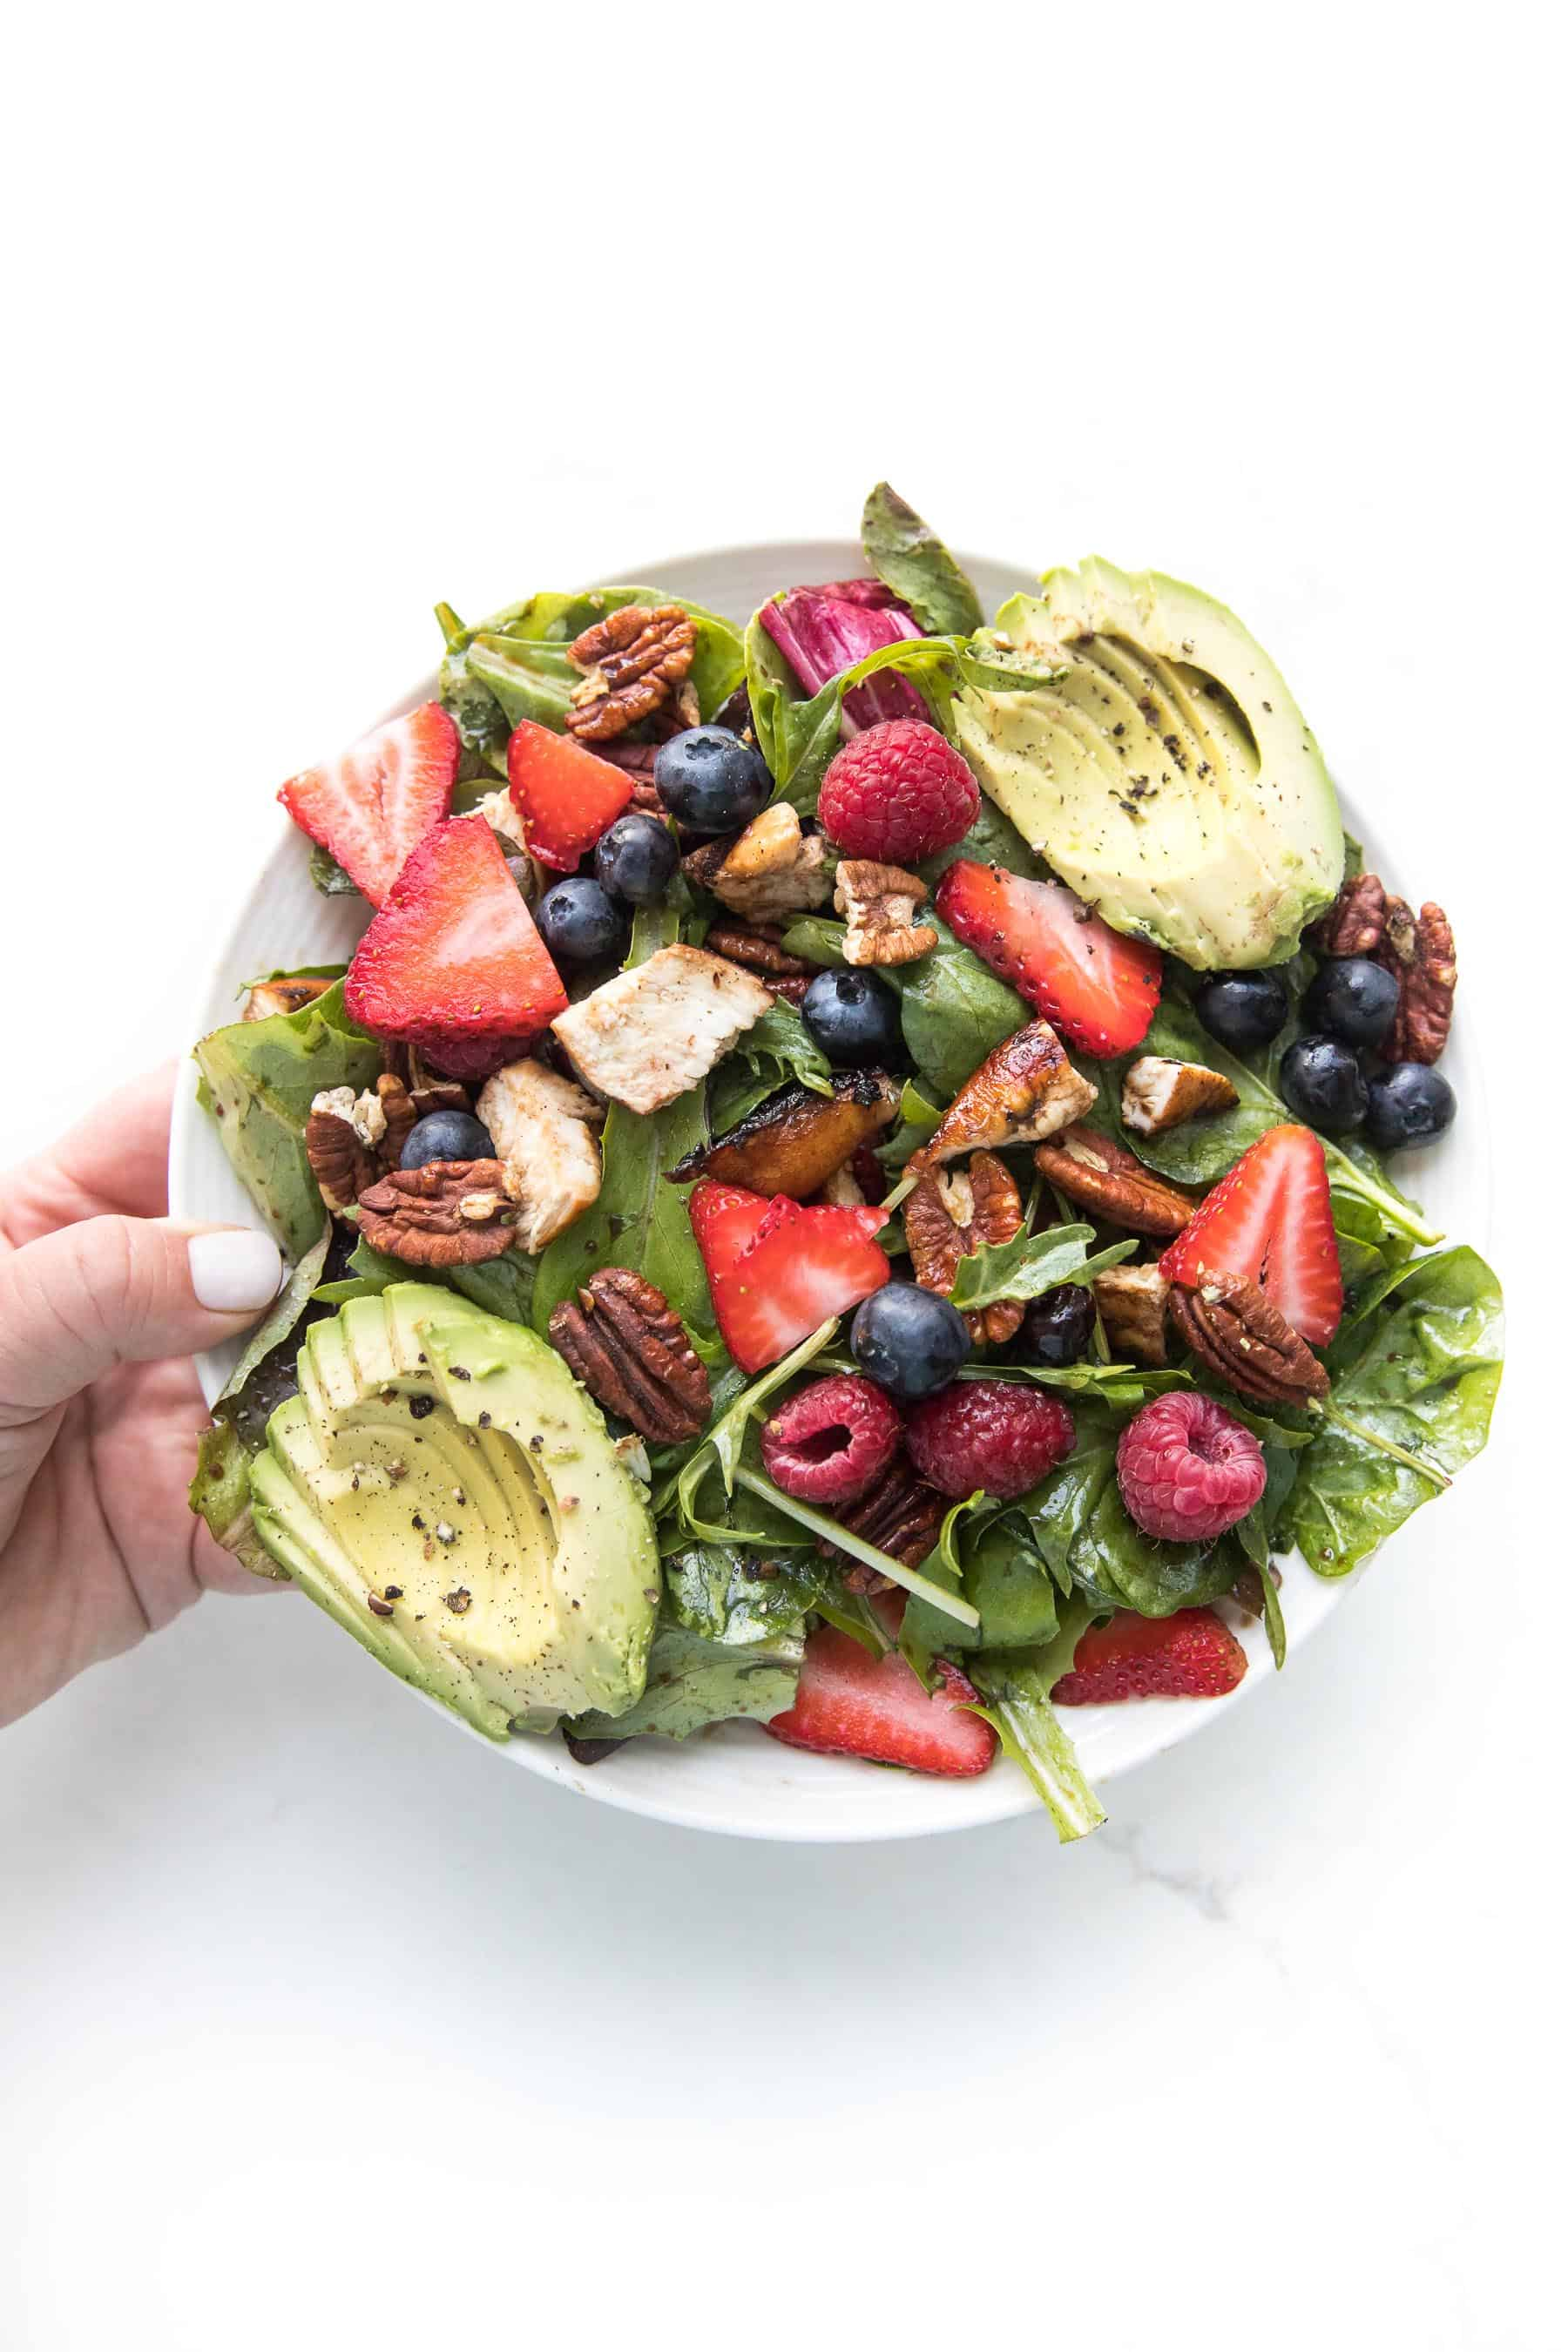 hand holding a salad with strawberries, blueberries, raspberries, chicken, avocado + pecans on a white plate and background